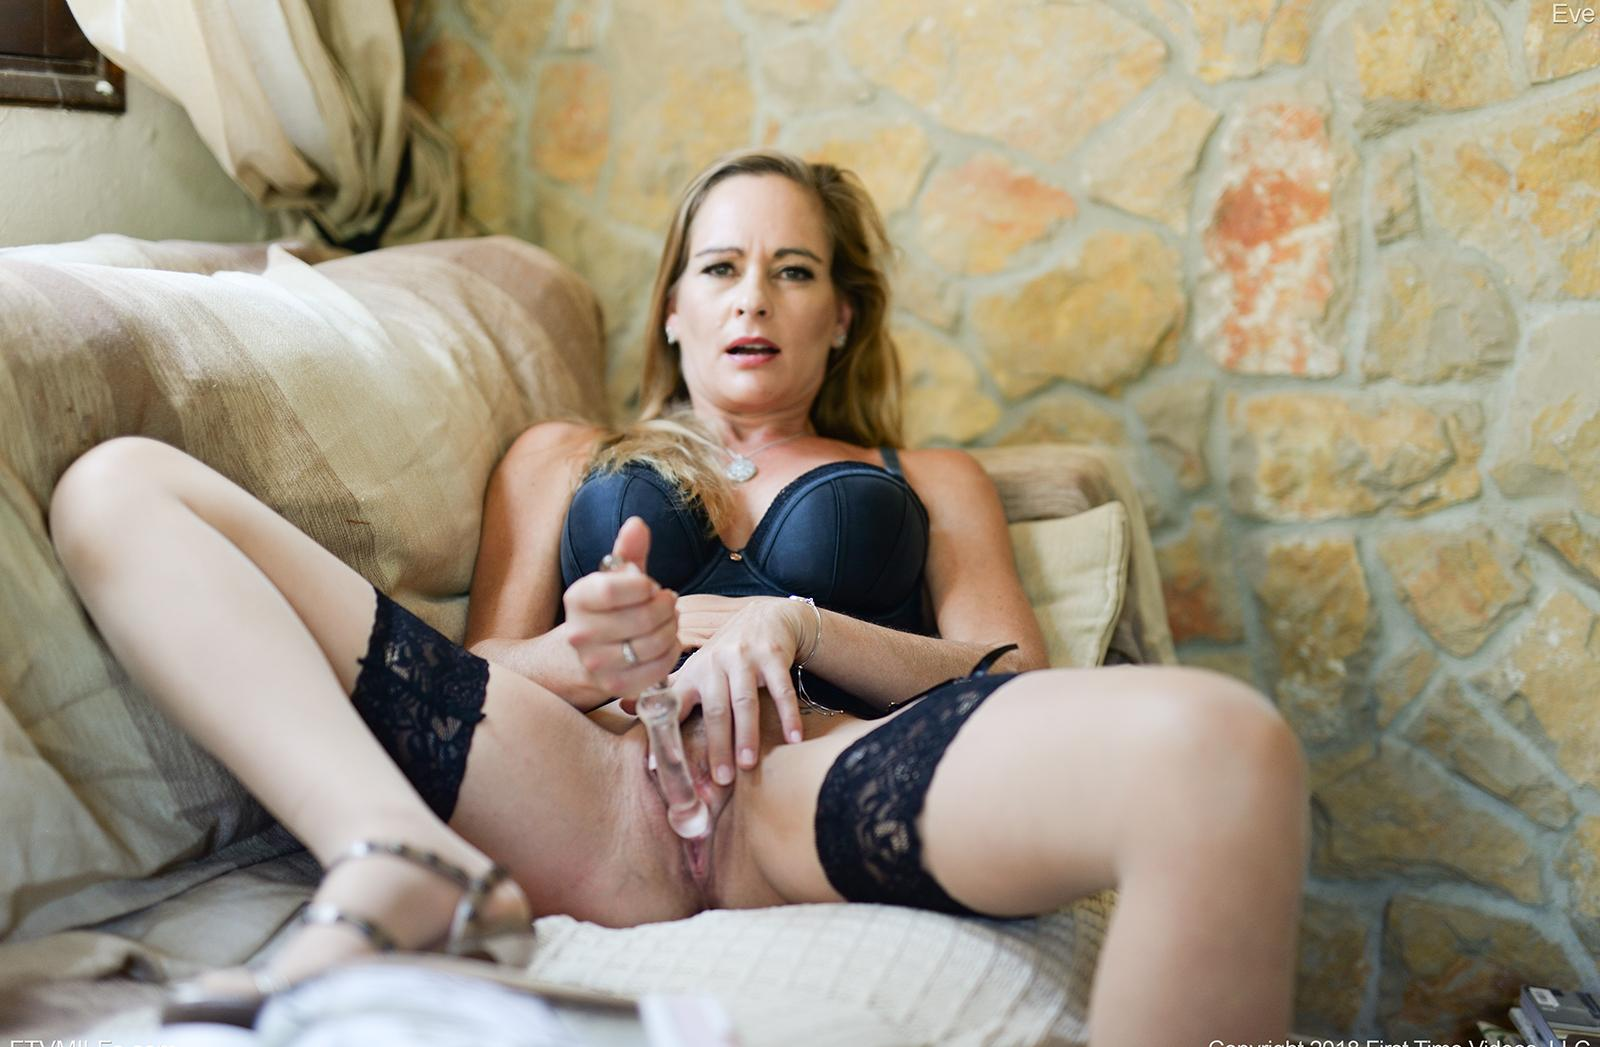 kinky french mom puts something dirty between her legs picture 6